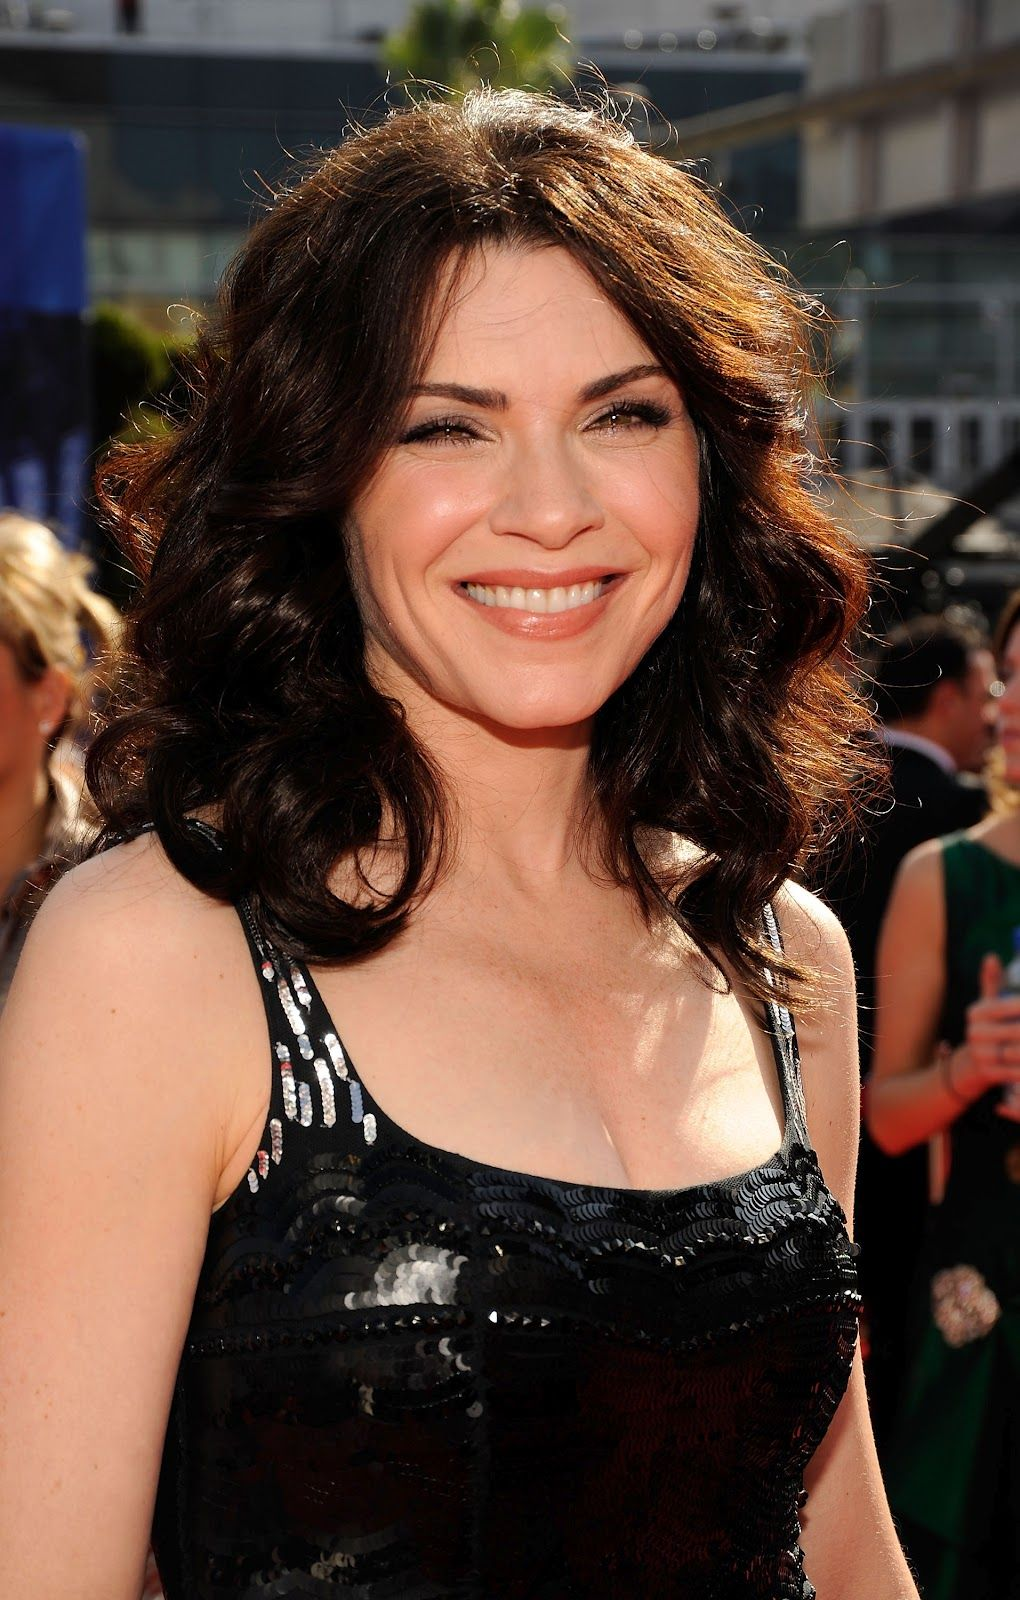 julianna margulies plays alicia florrick in the good wife tv show